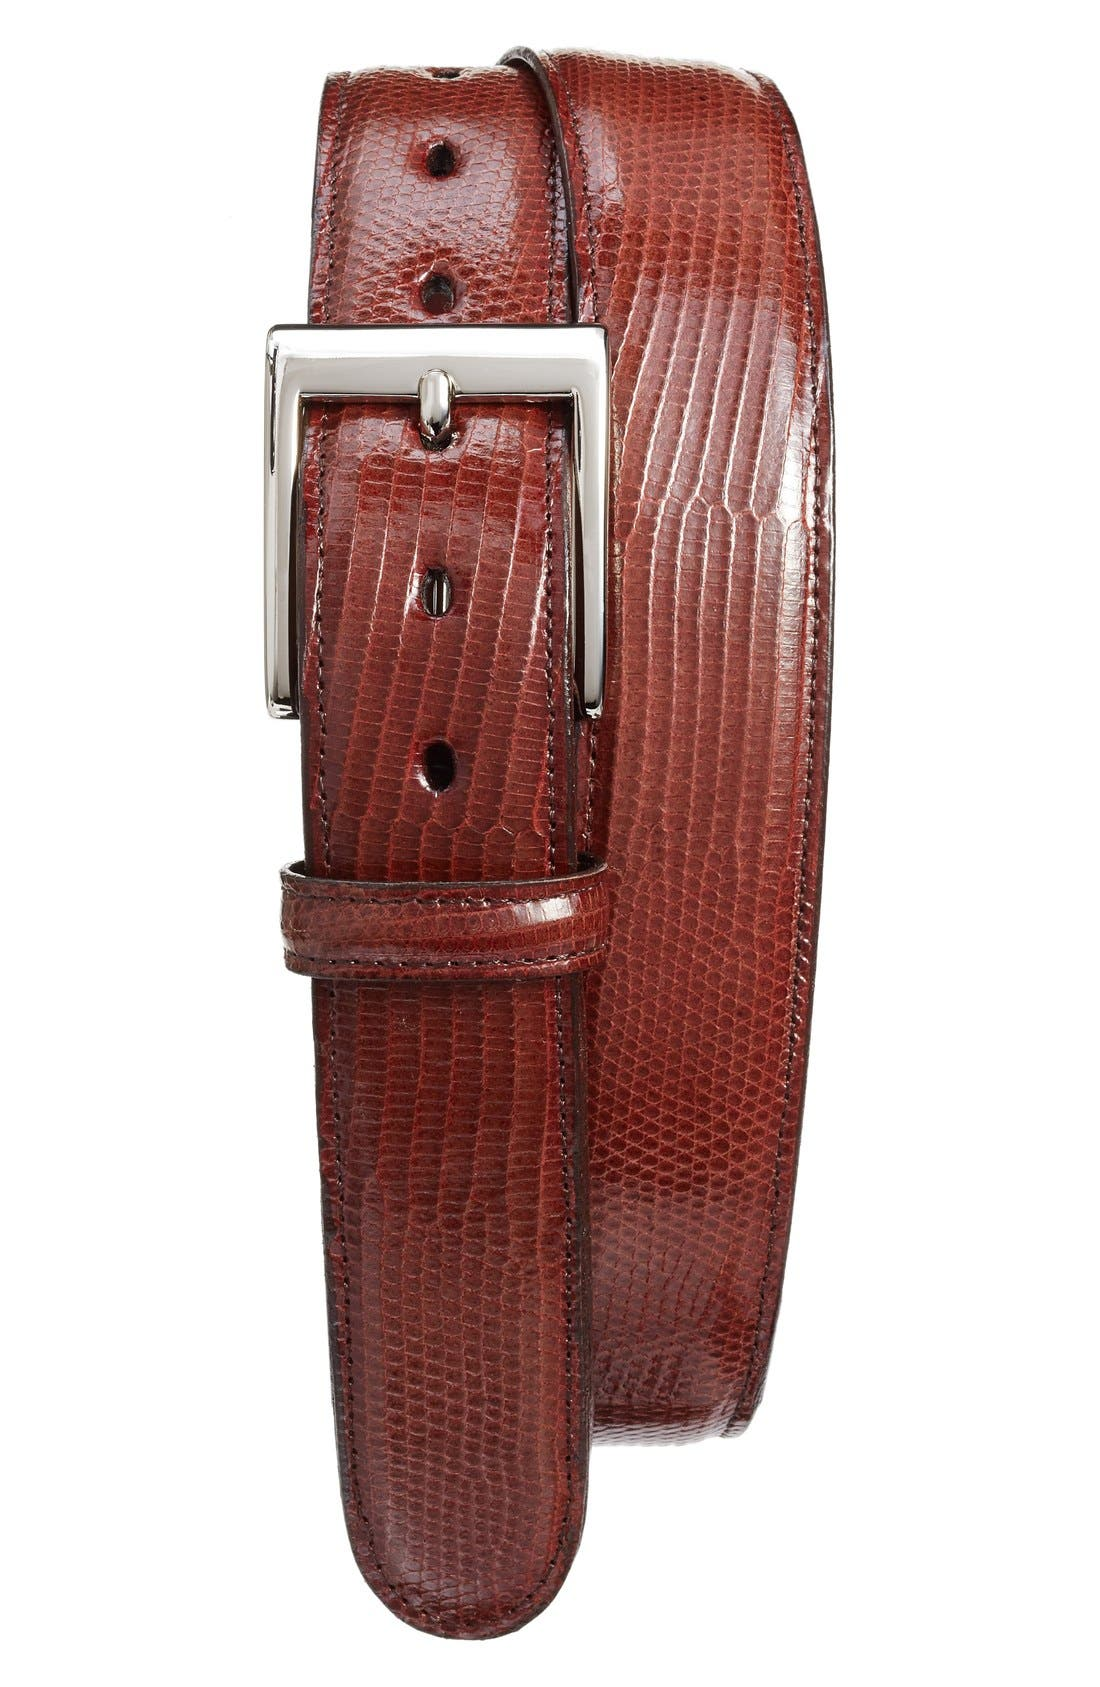 Main Image - Torino Belts Lizard Leather Belt